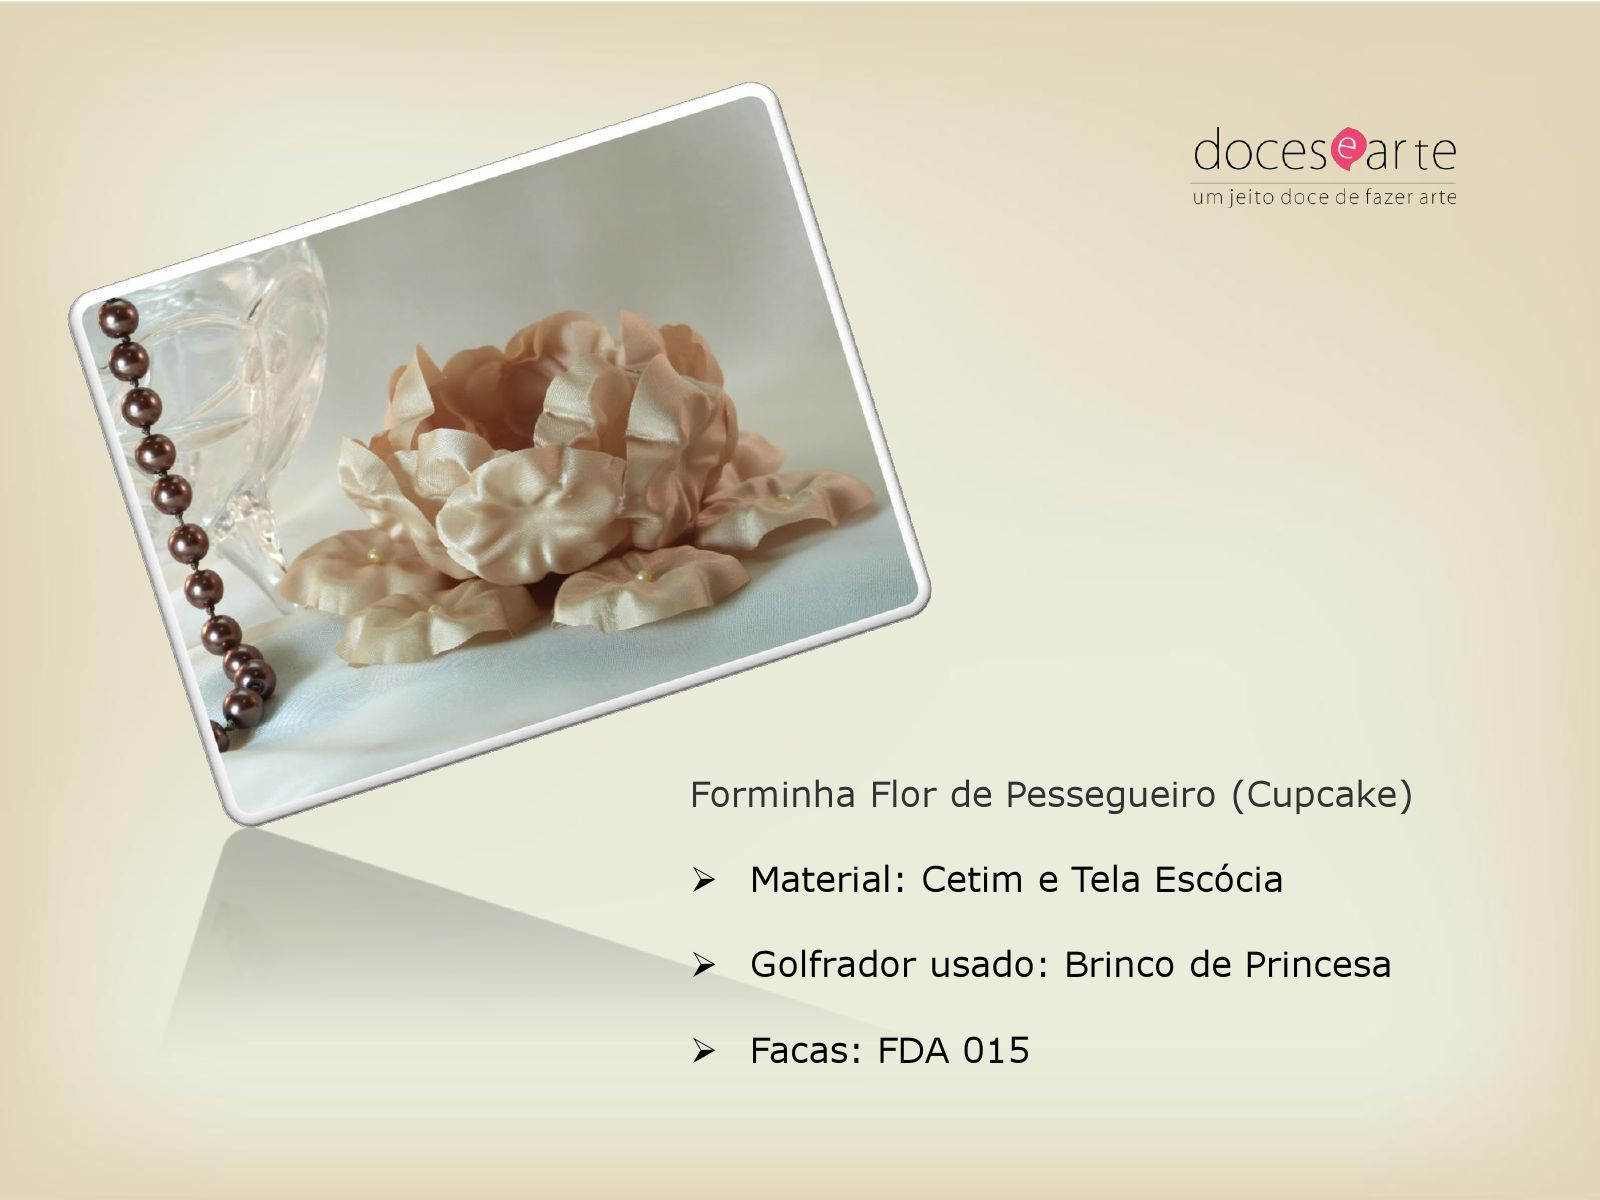 Catalogo de forminhas - Doces e Arte | PDF to Flipbook